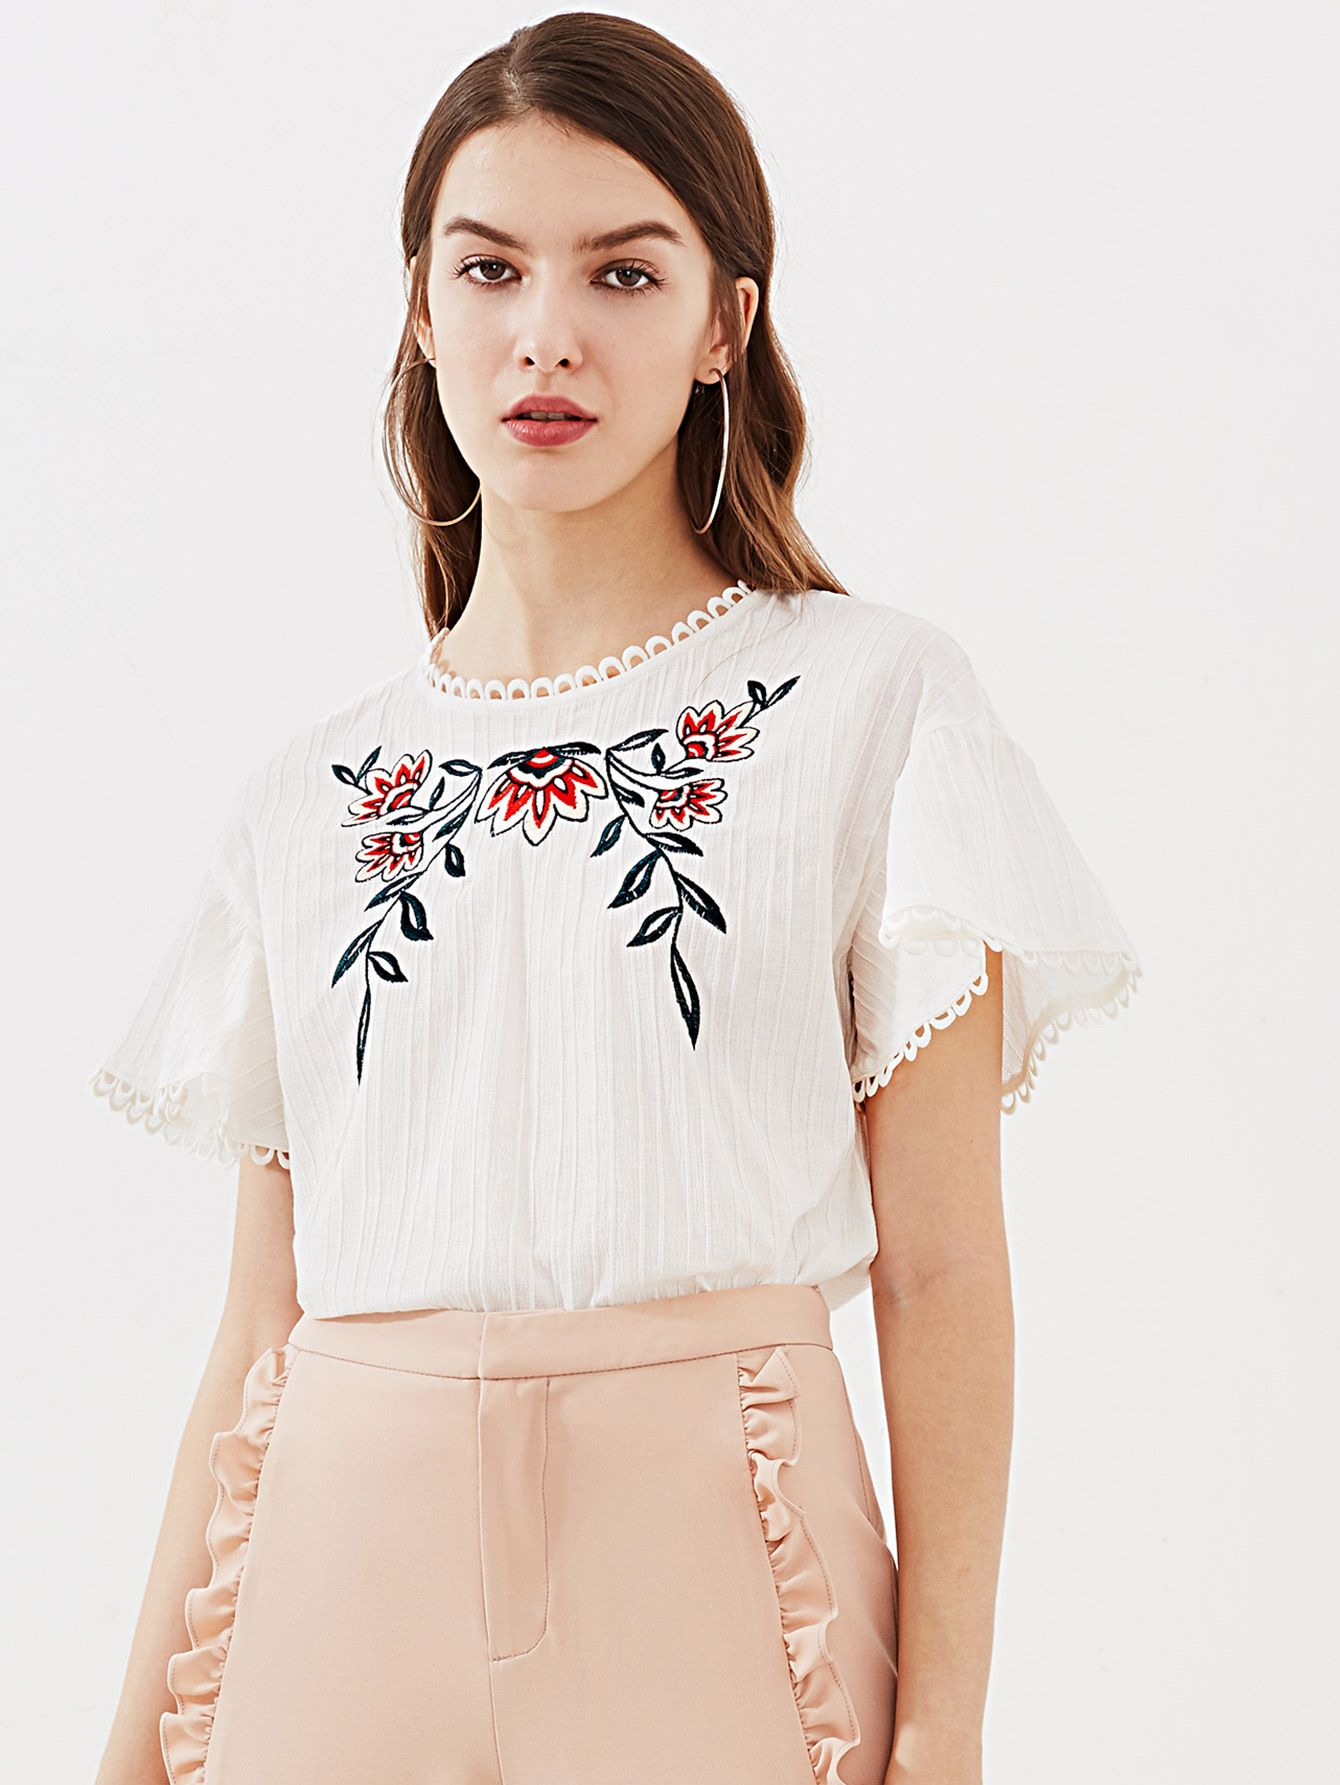 a01d20274034d Shop Lace Trim Keyhole Back Flower Embroidered Textured Top online. SheIn  offers Lace Trim Keyhole Back Flower Embroidered Textured Top   more to fit  your ...